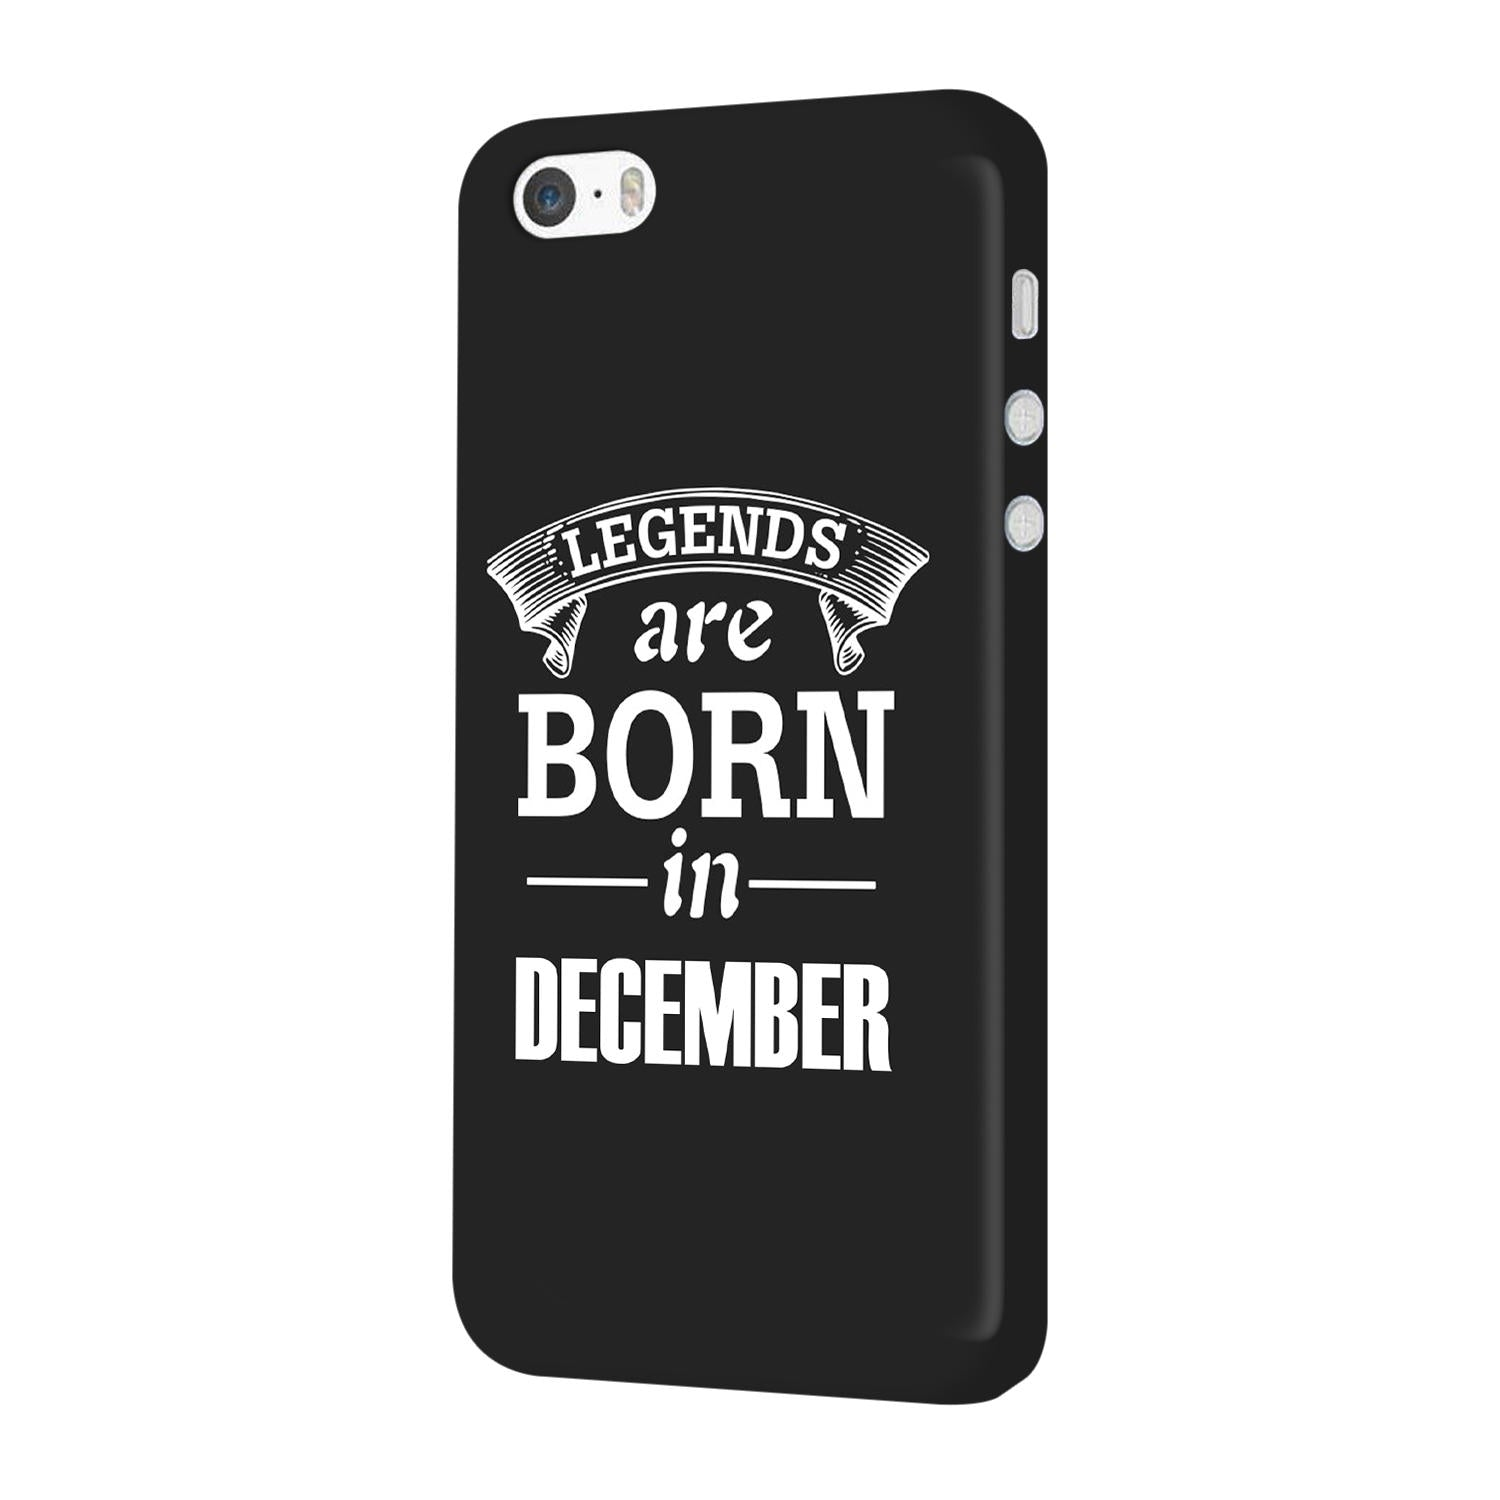 Legends December iPhone 5 Mobile Cover Case